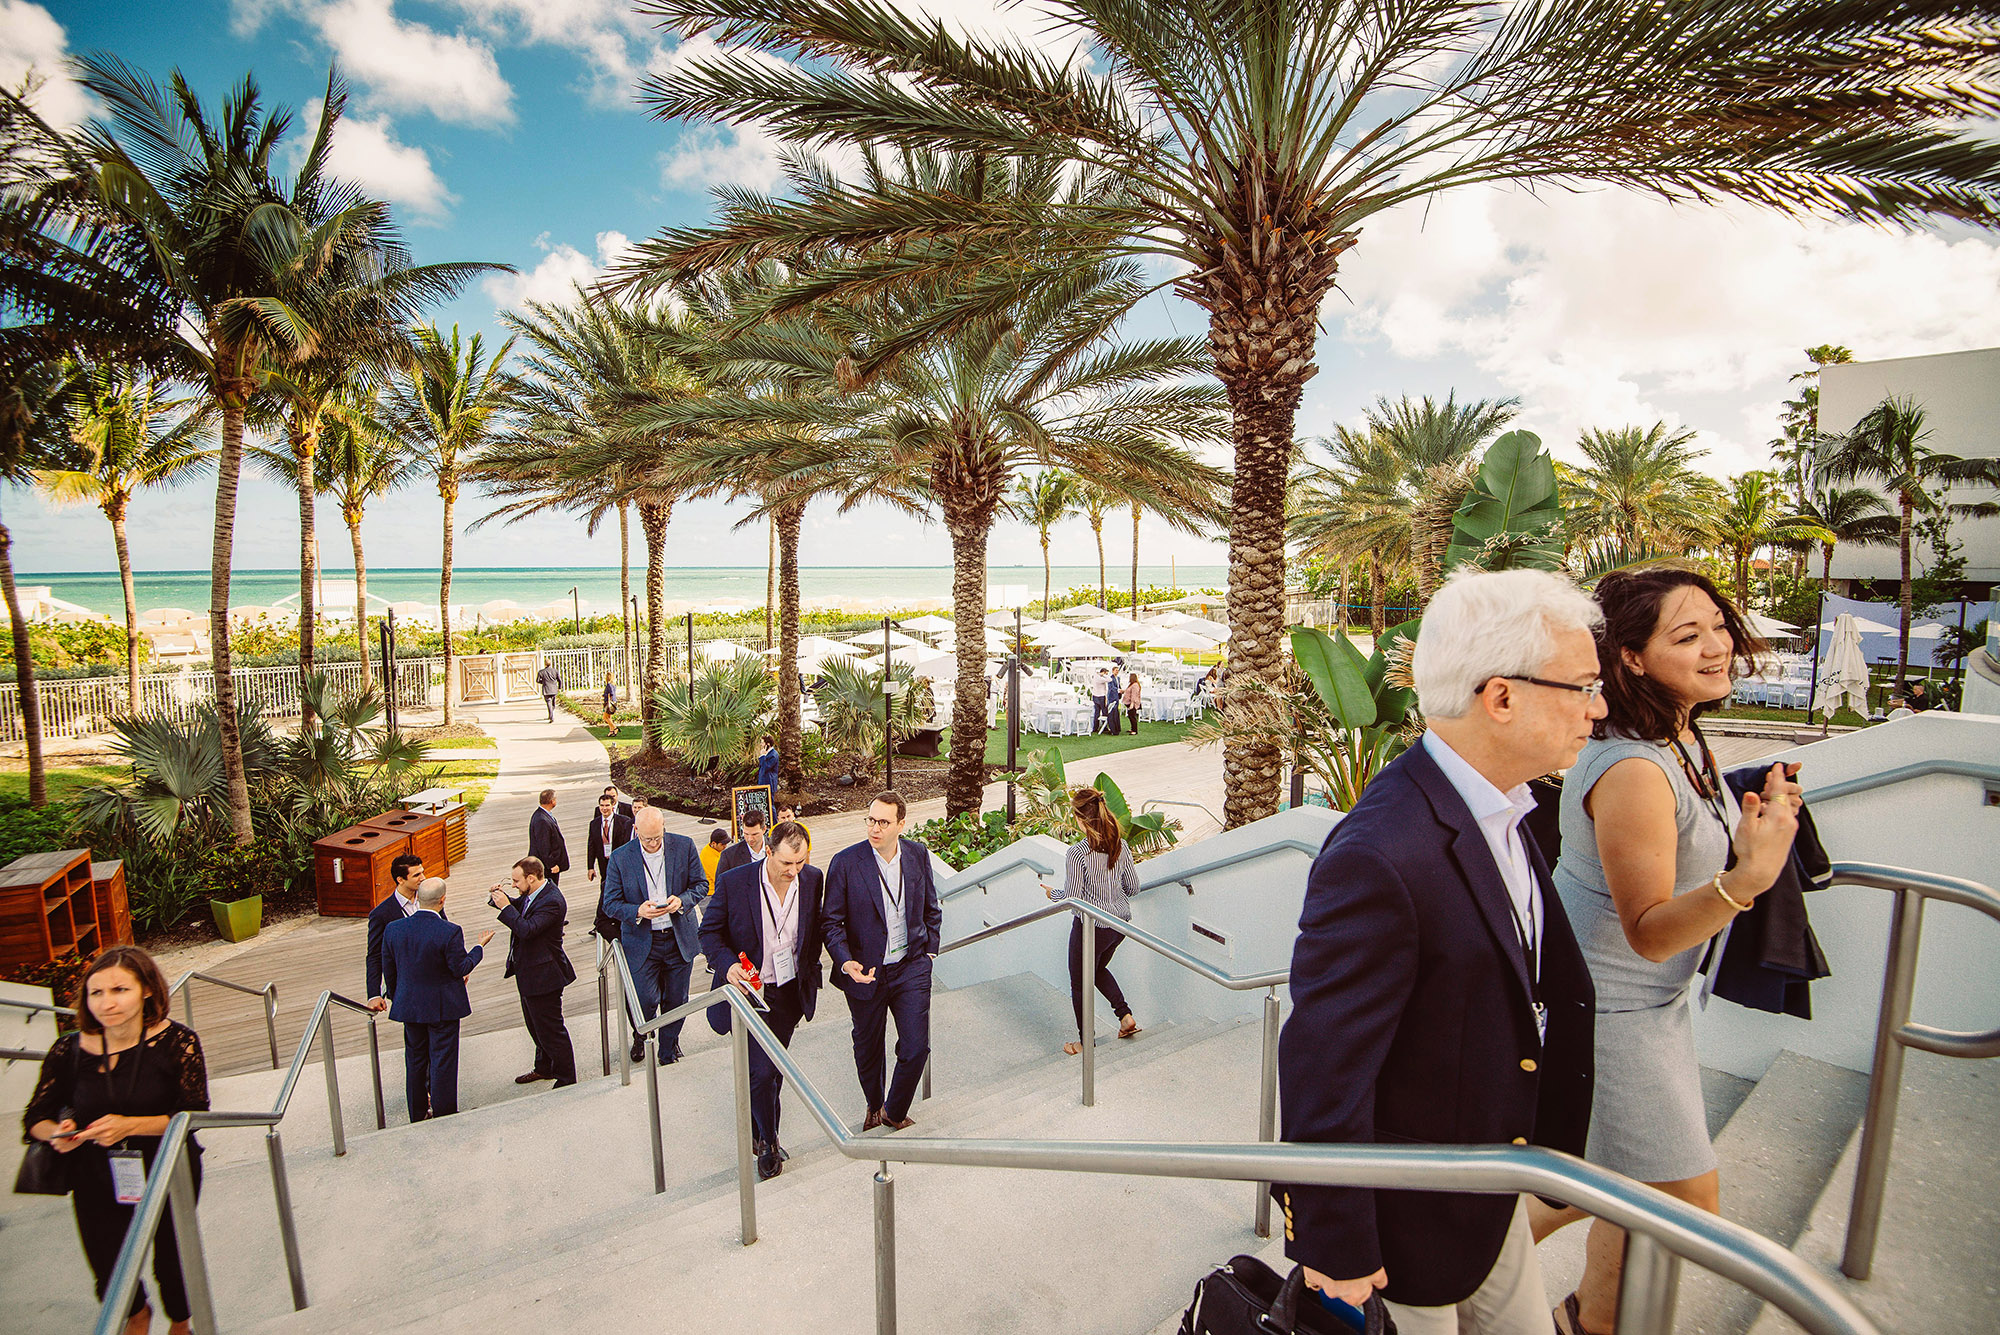 Corporate Event photographer Richard Hadley at the Eden Roc in Miami